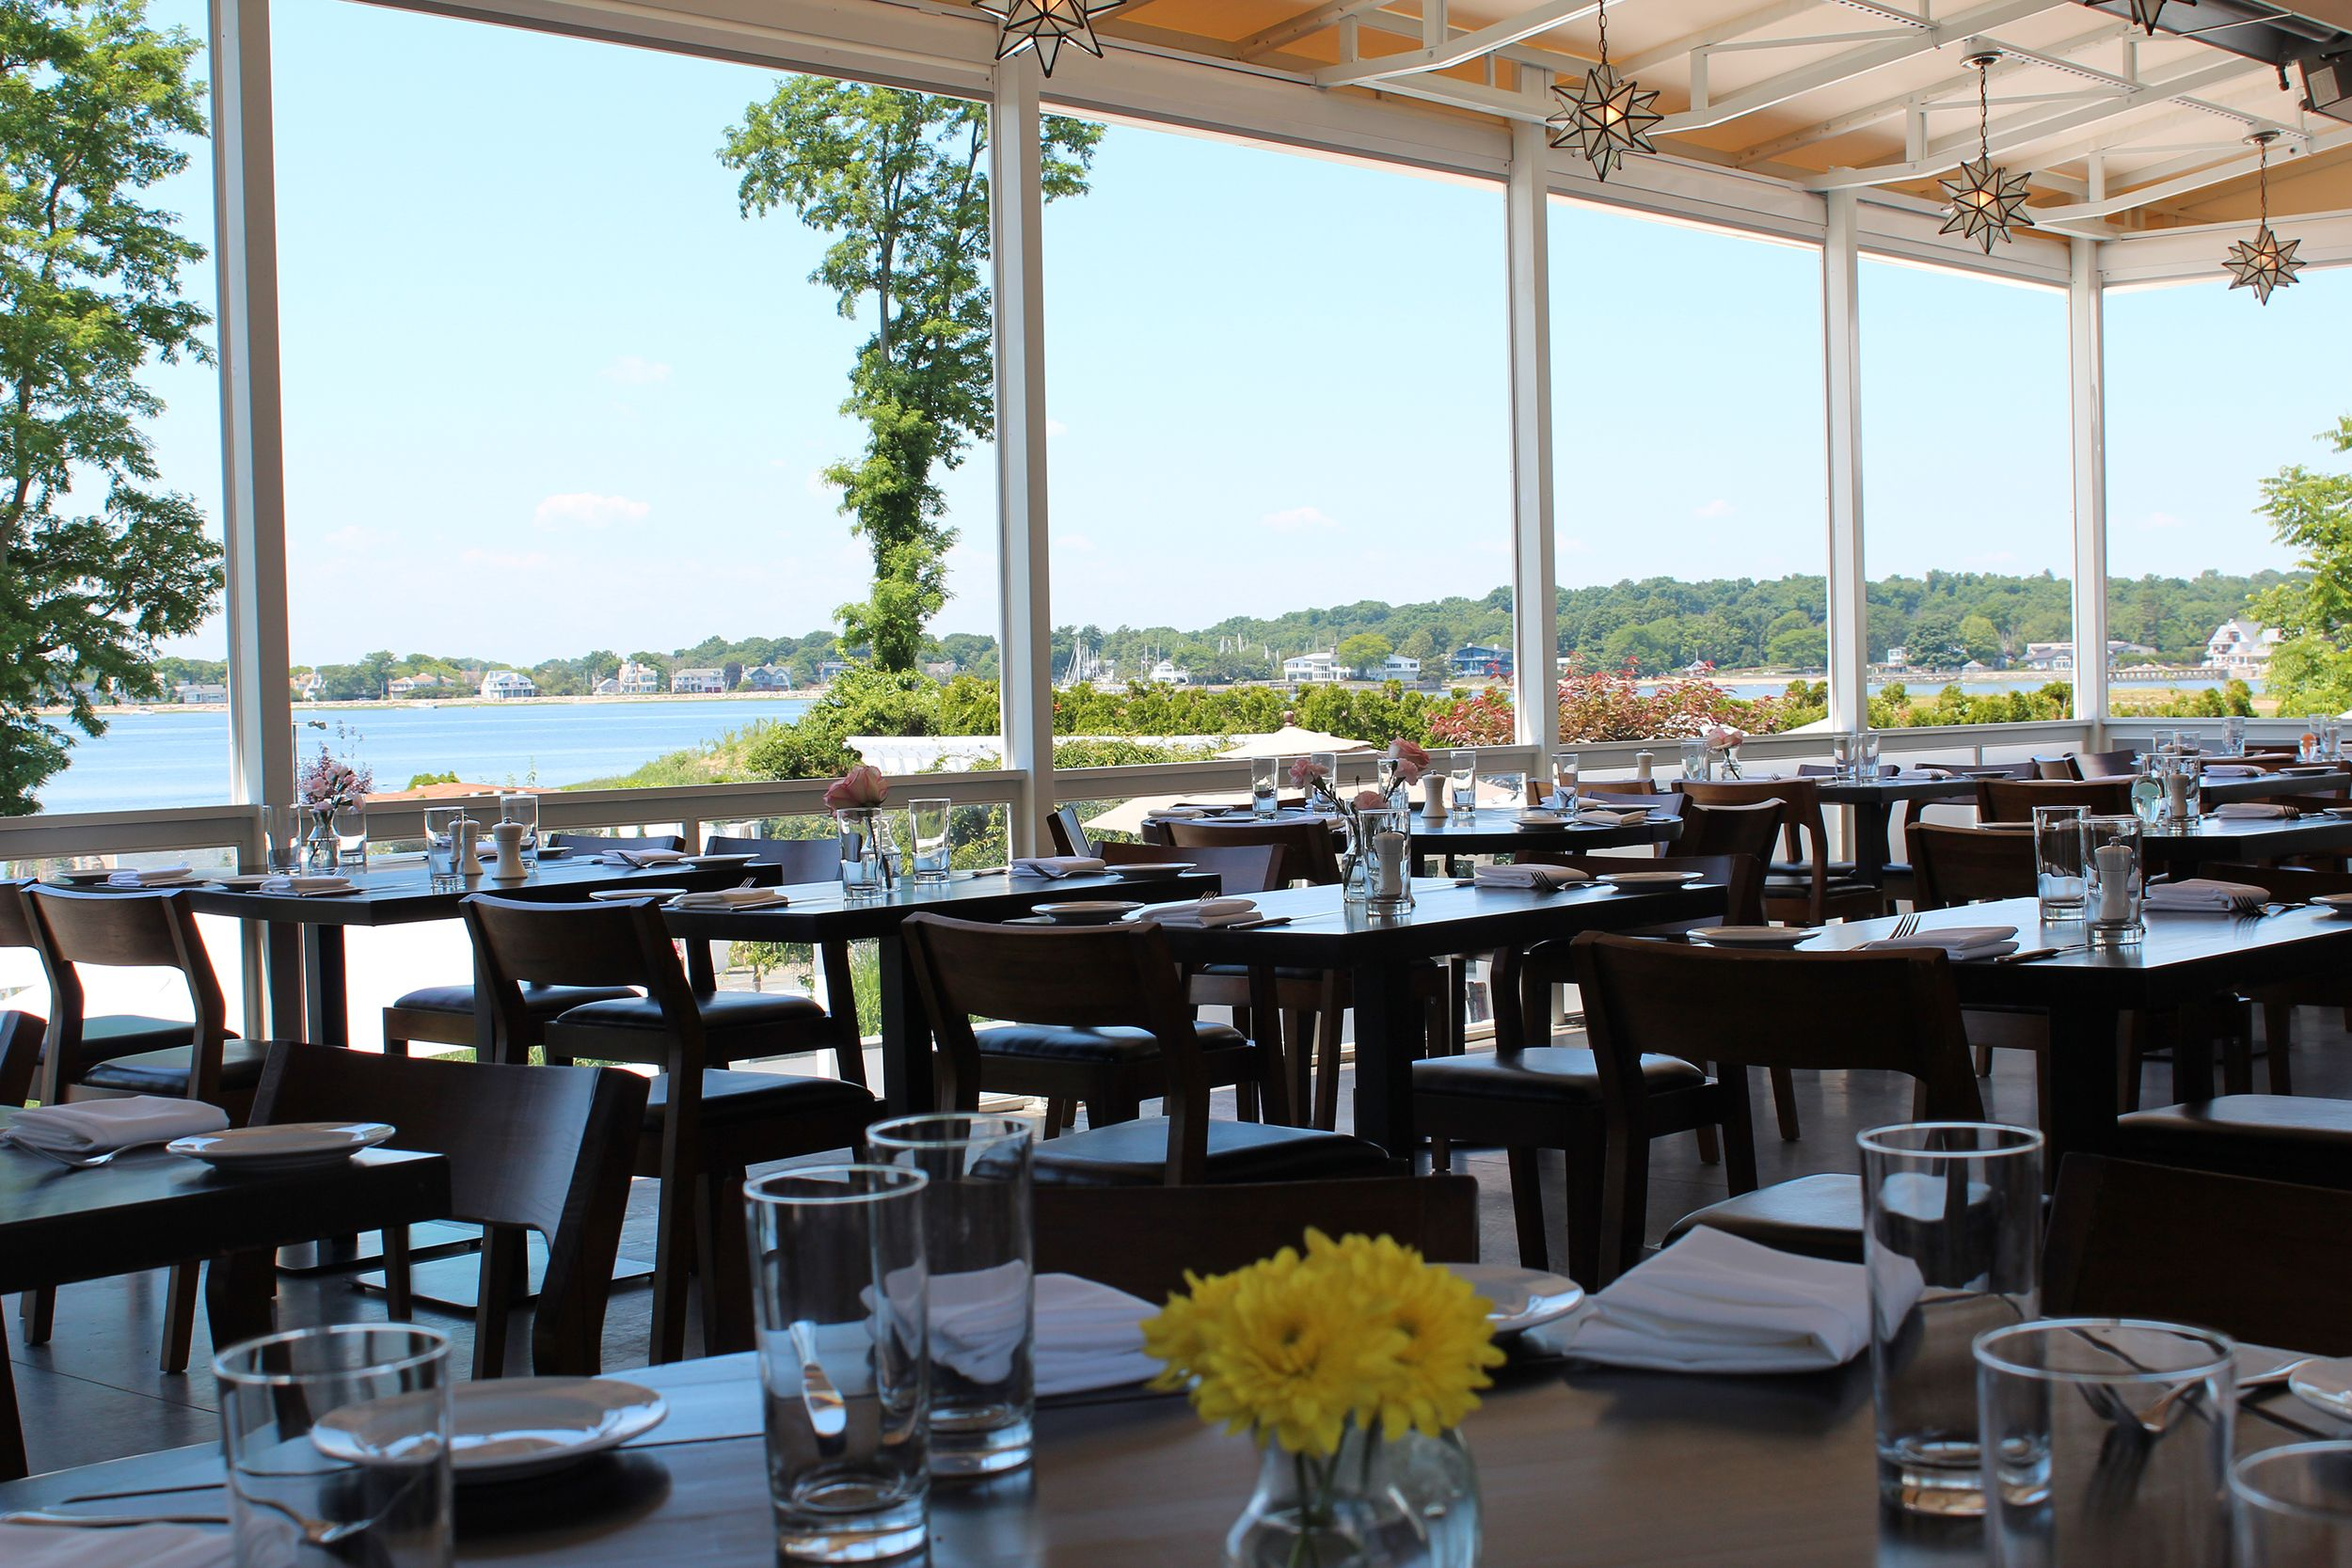 A Great Reason To Live In Westport Ct Is The Many Choices Of Exquisite Restaurants